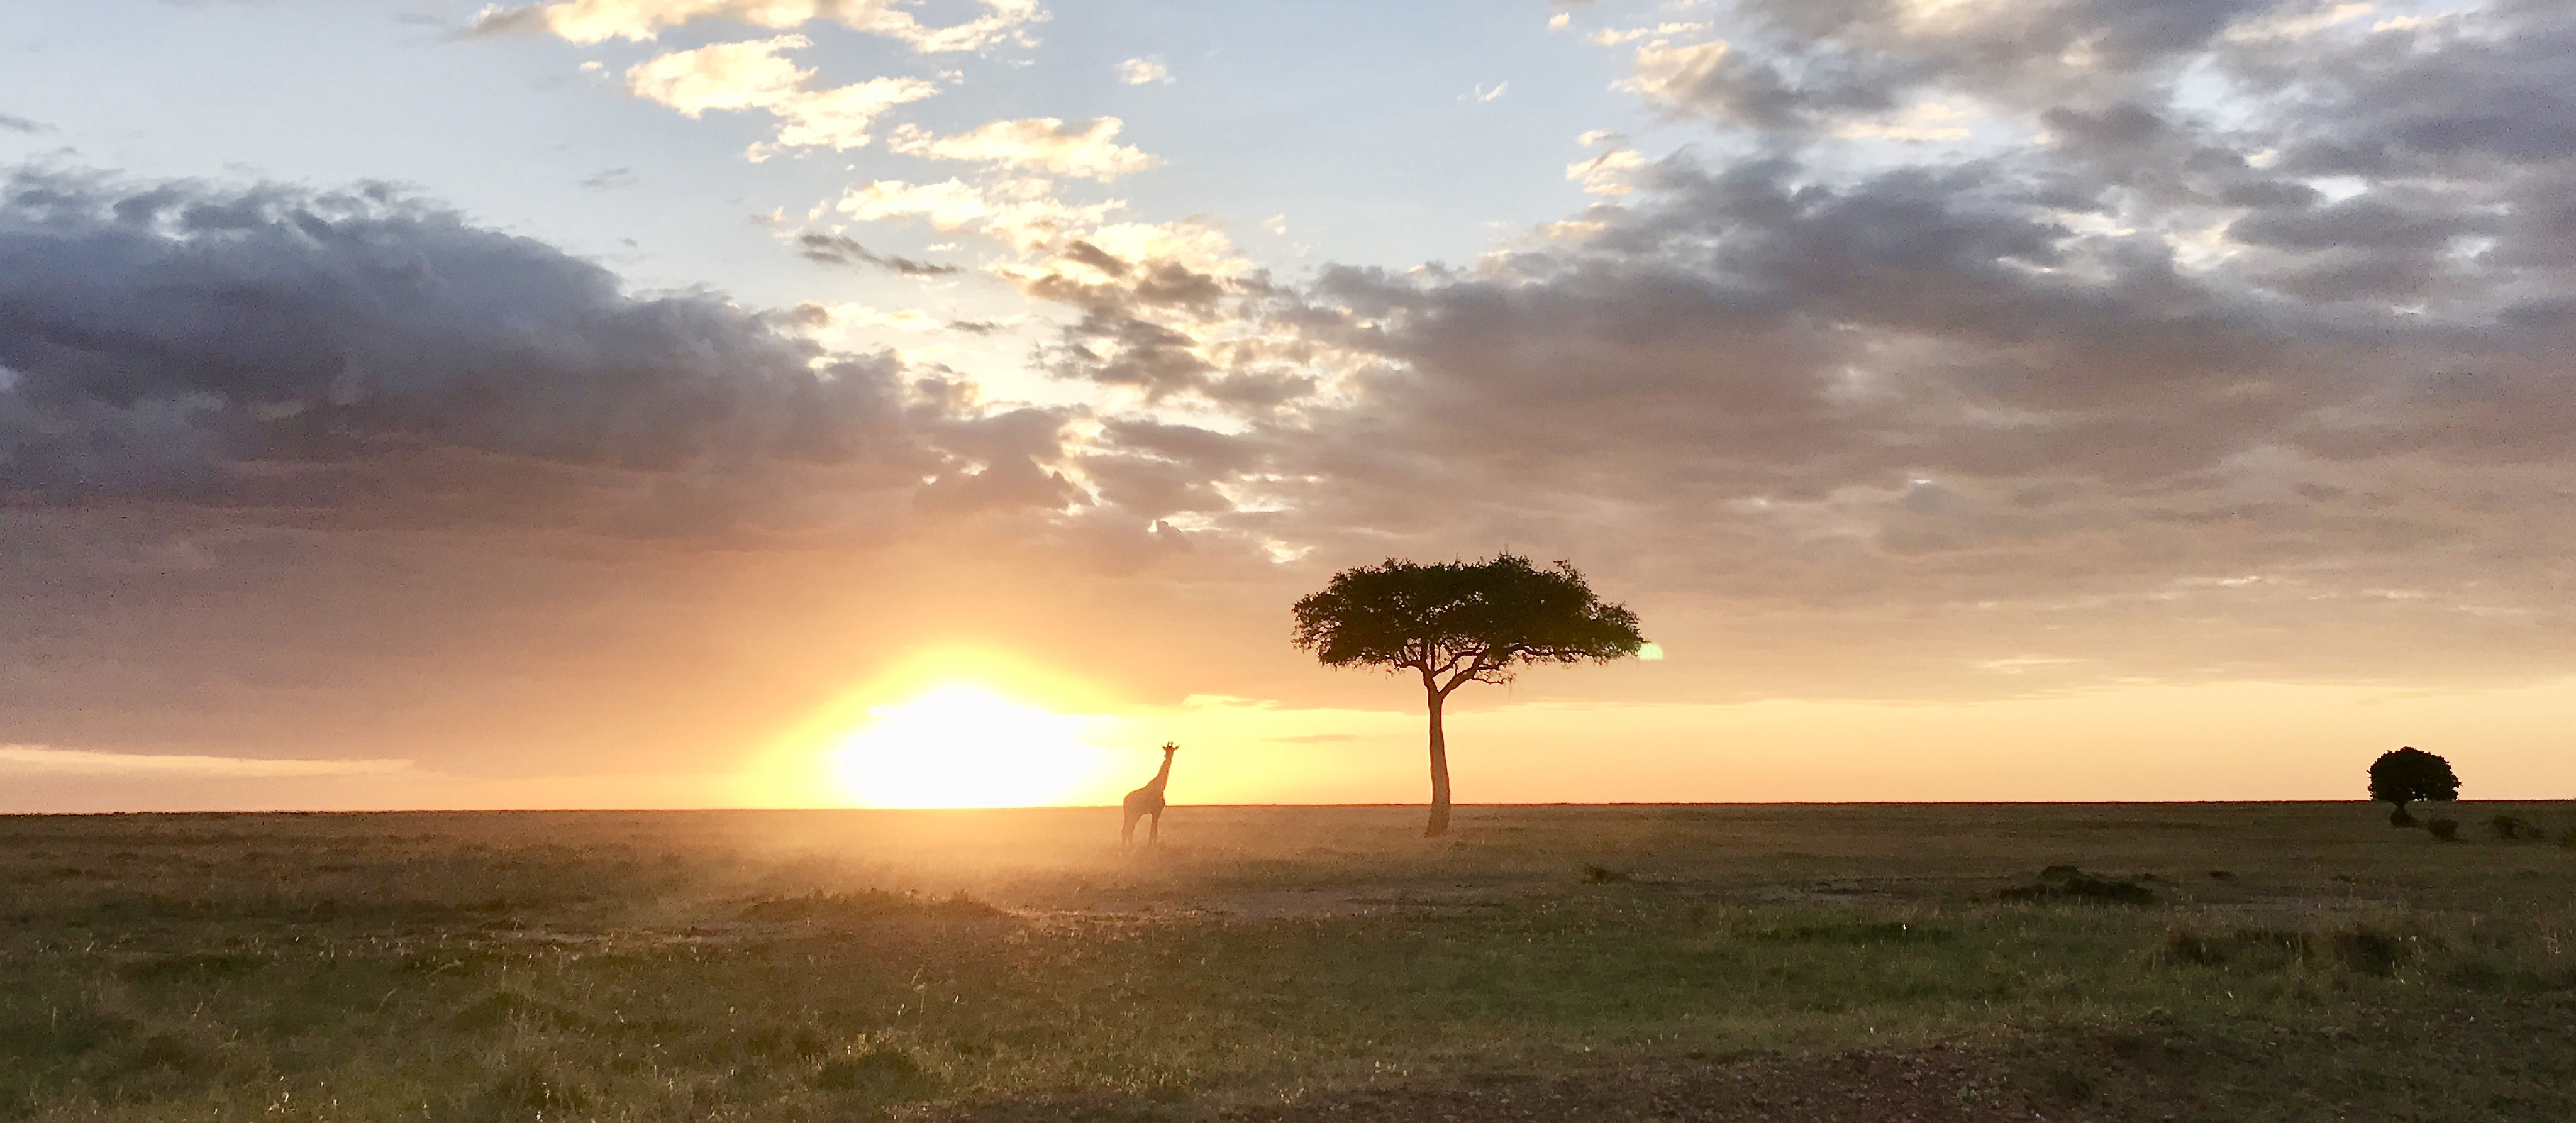 Giraffe, Acacia and Sun Set